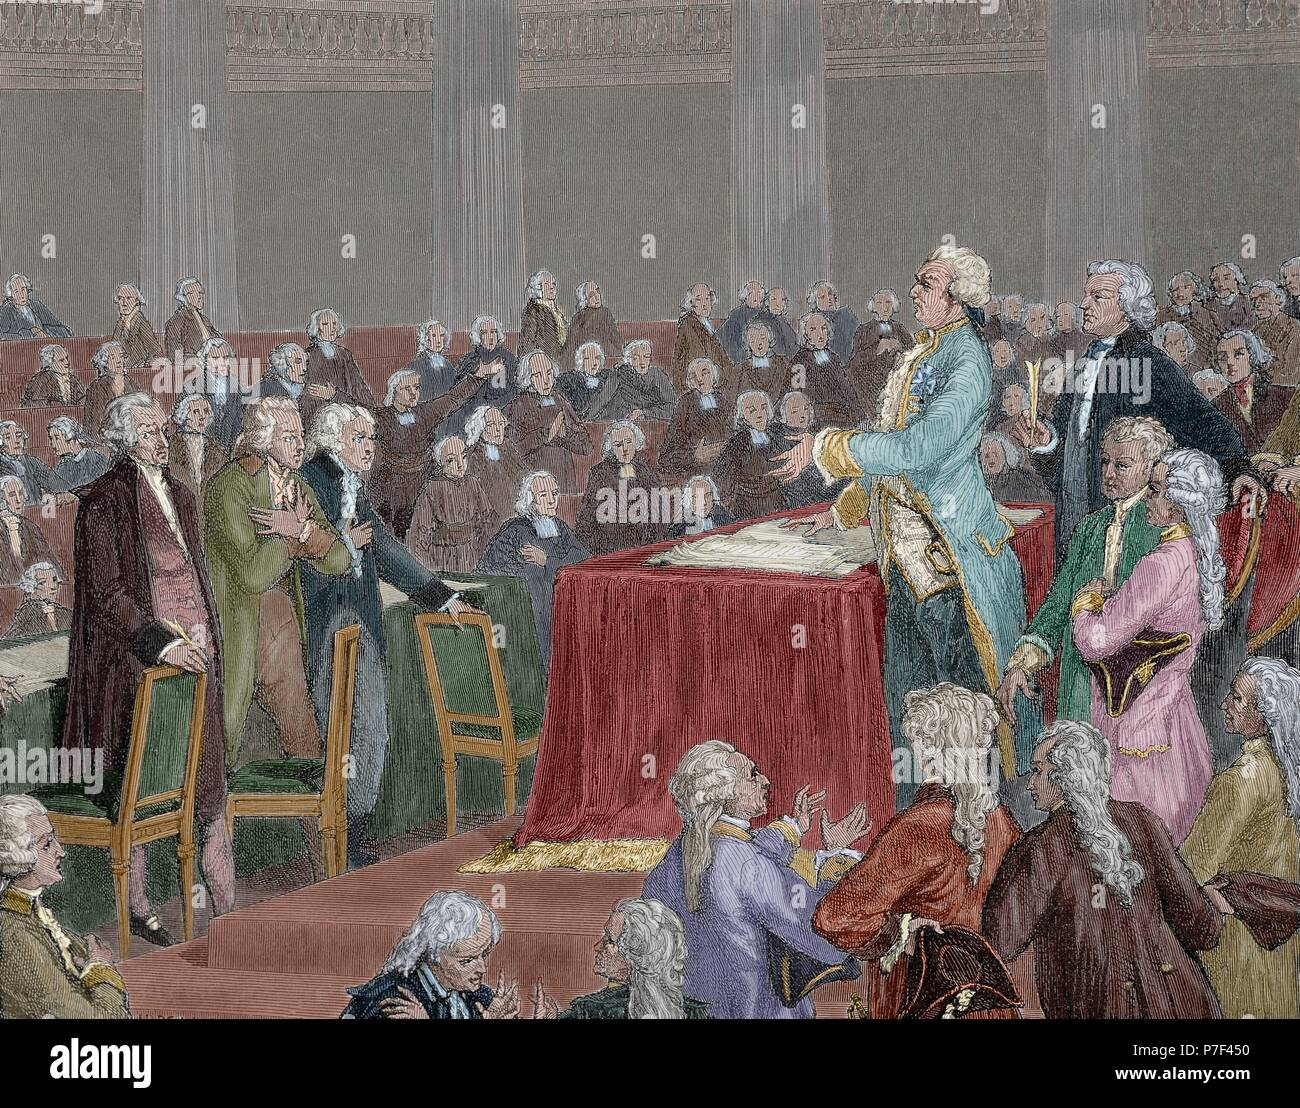 Louis XVI was forced to adopt the Constitution of 1791 by the National  Assembly. Engraving by Meyer Heine, 1900. Colored.